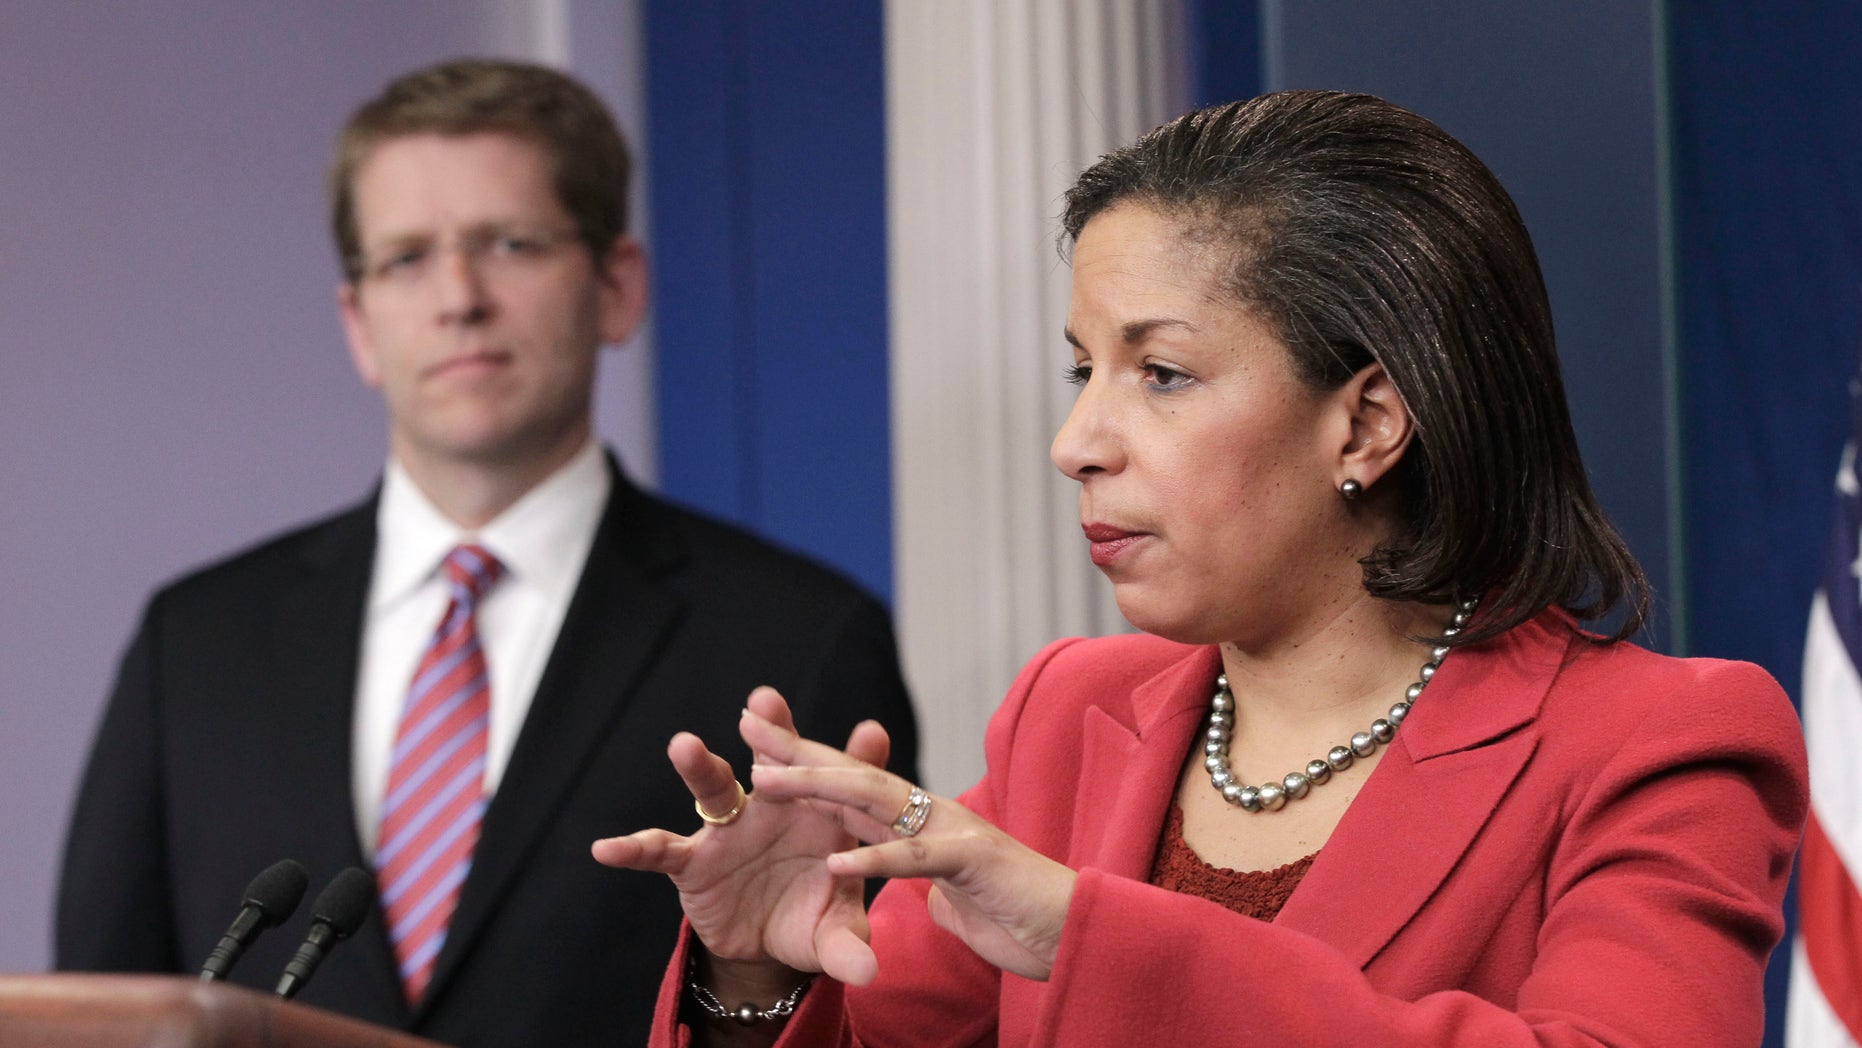 US Ambassador to the United Nations Susan Rice, right, accompanied by White House Press Secretary Jay Carney, gestures during the daily news briefing at the White House in Washington, Monday, Feb., 28, 2011. (AP)